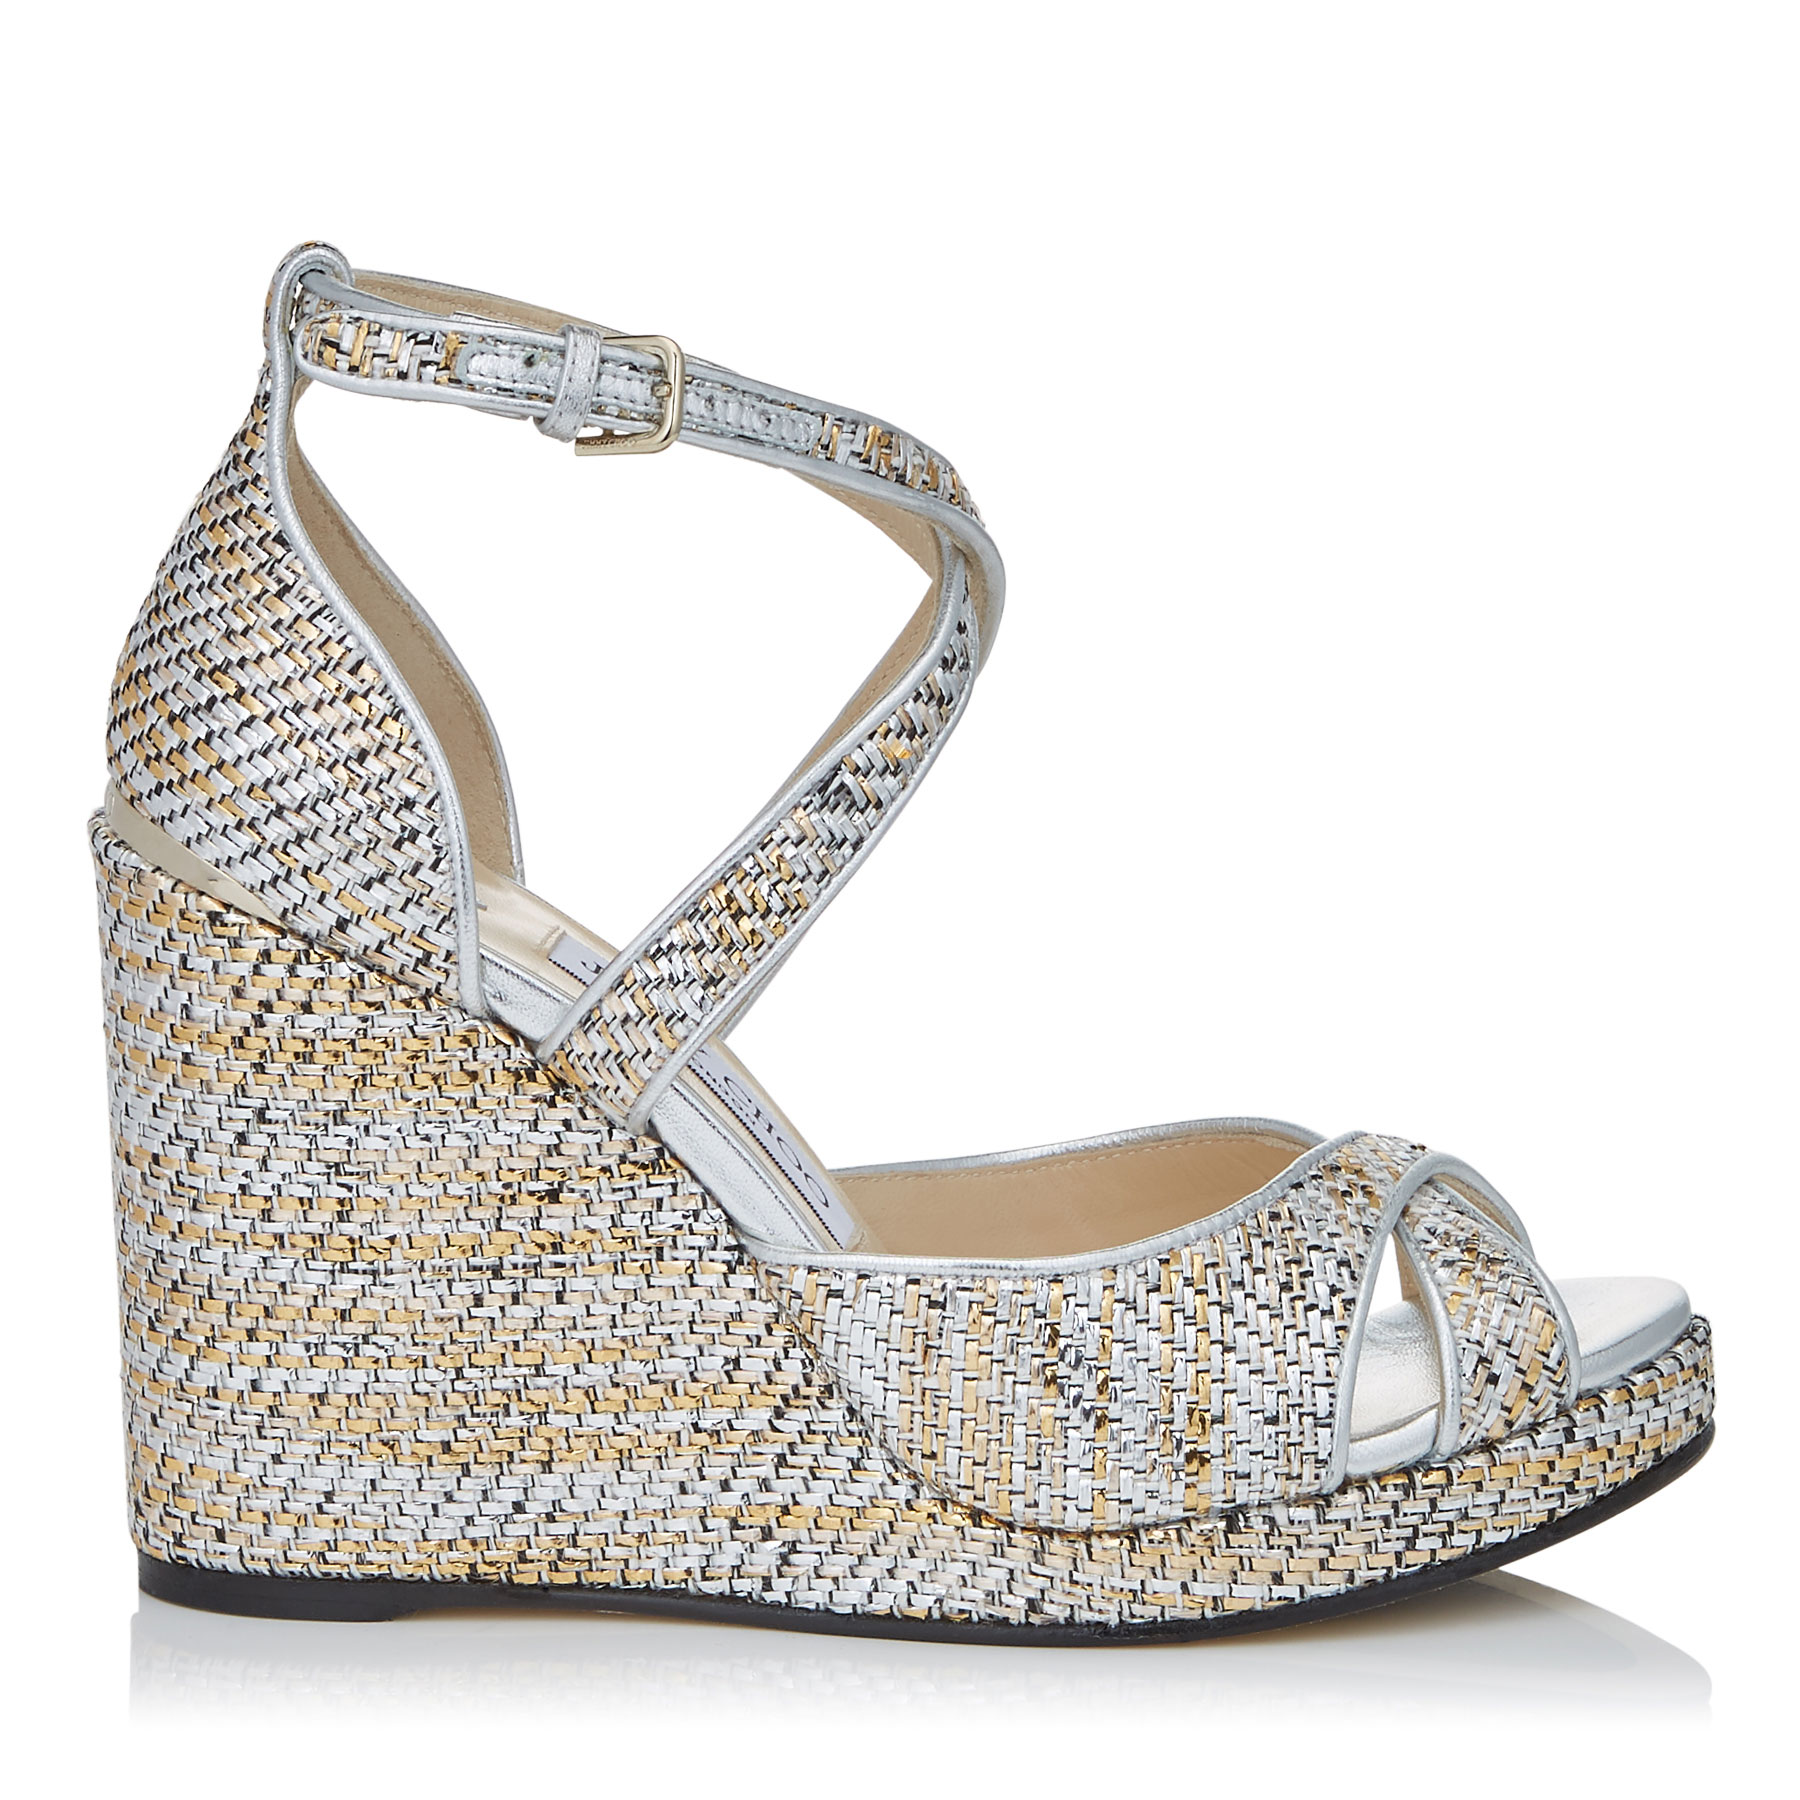 ALANAH 105 Silver Mix Woven Metallic Fabric Wedges by Jimmy Choo